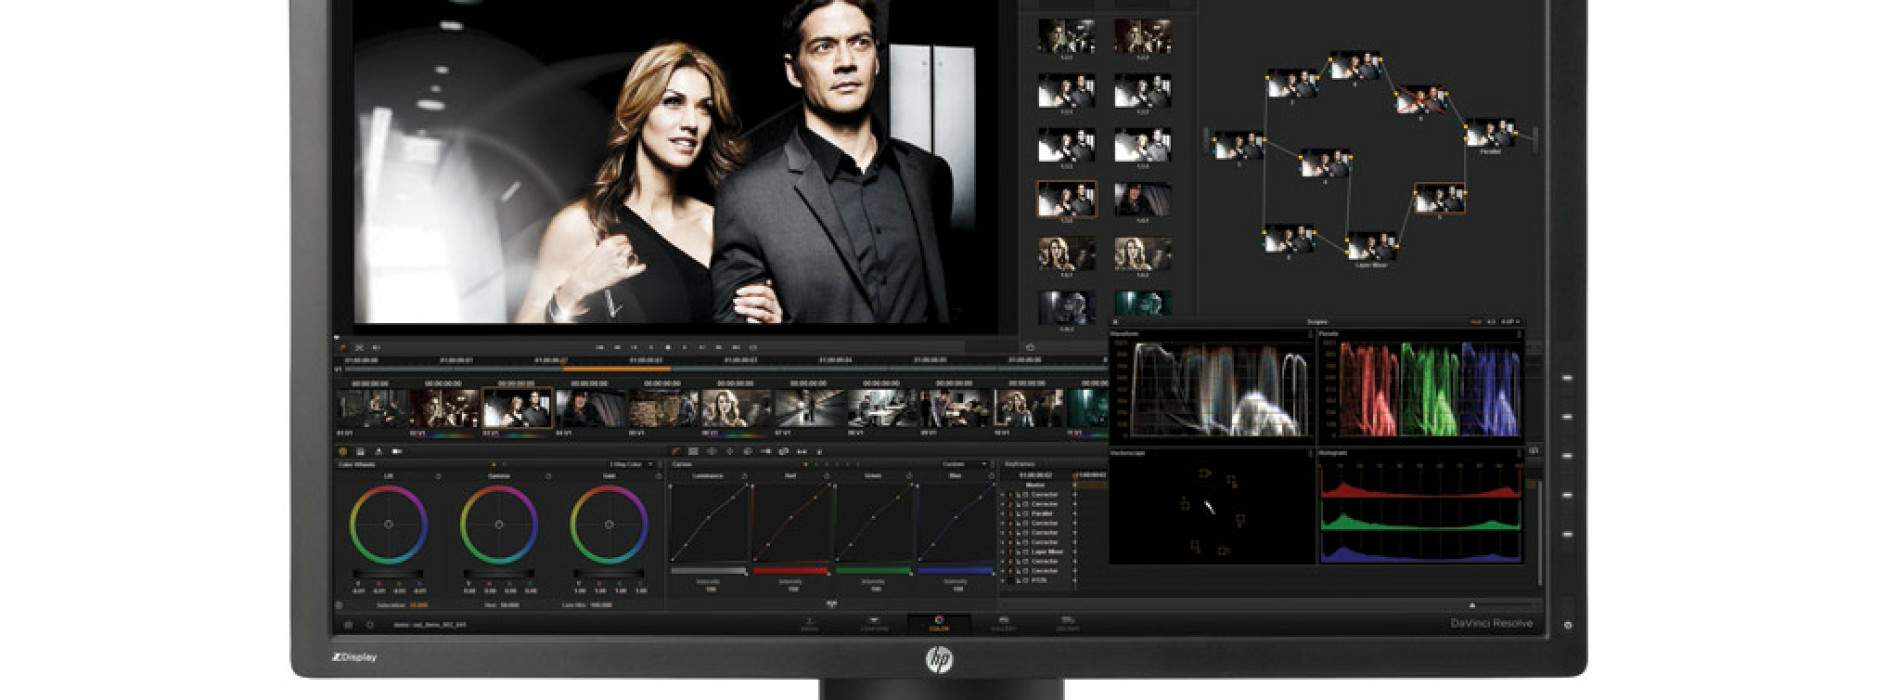 HP DreamColor, monitores que reproducen el color con exactitud